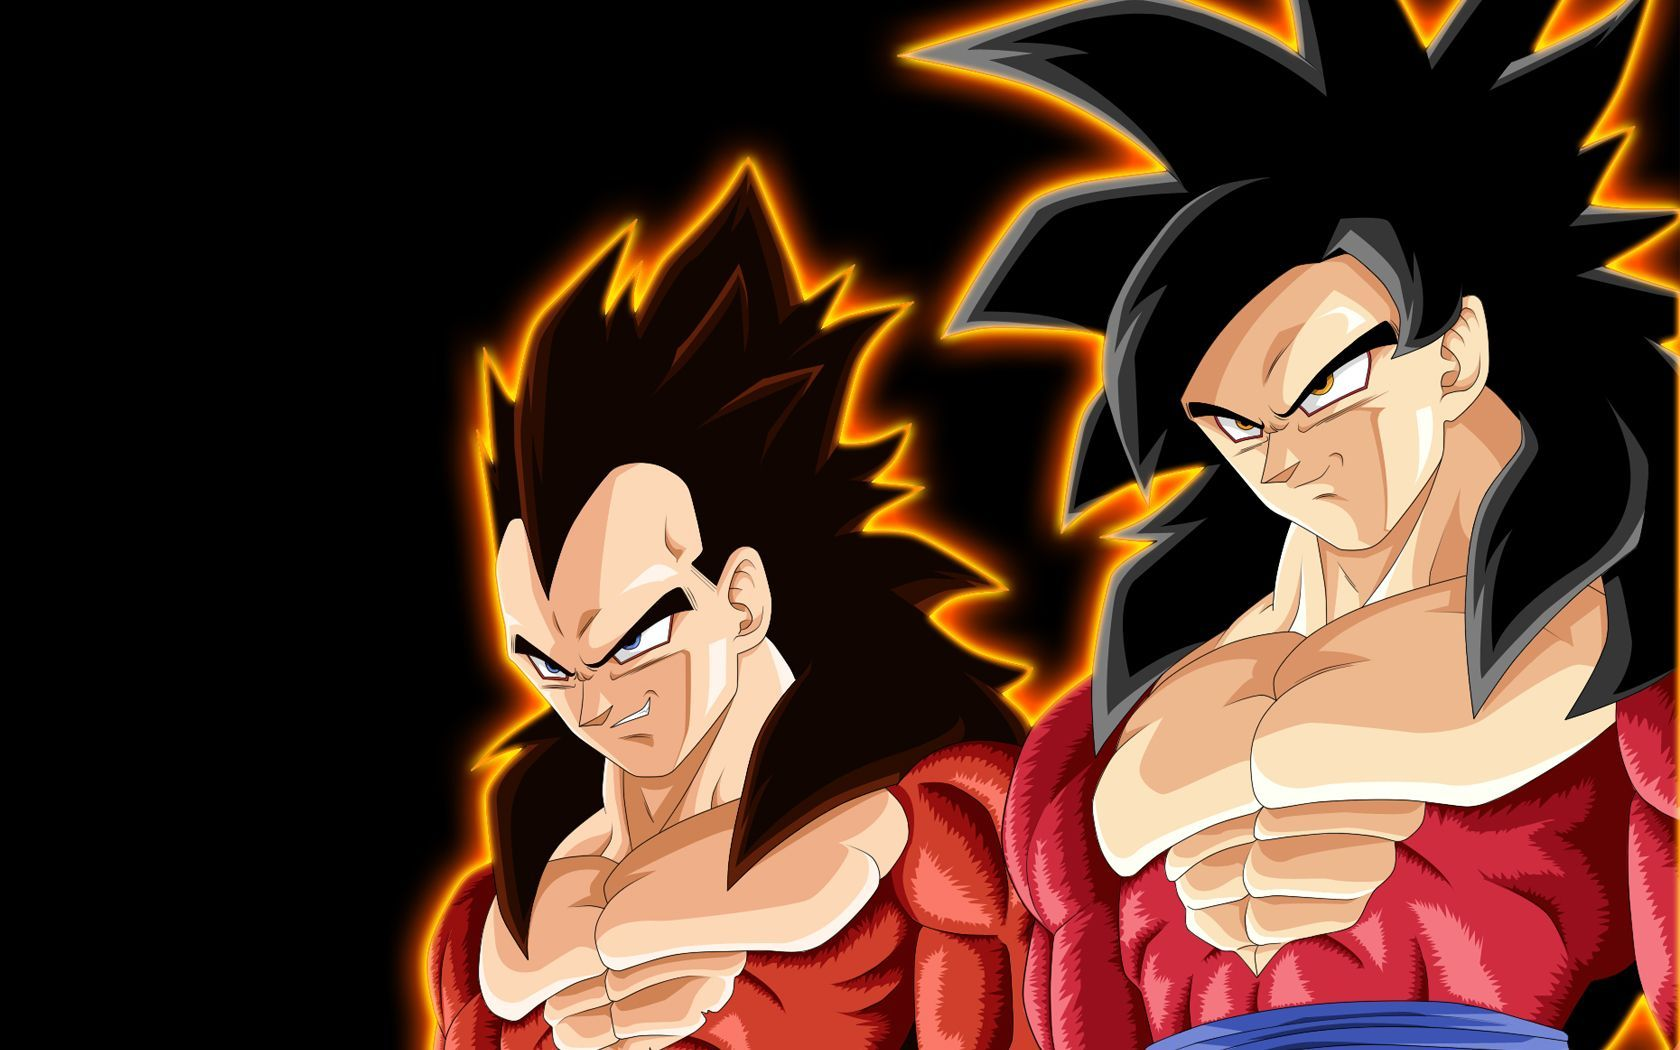 Dragon Ball Z Goku Super Saiyan 1000 Wallpaper